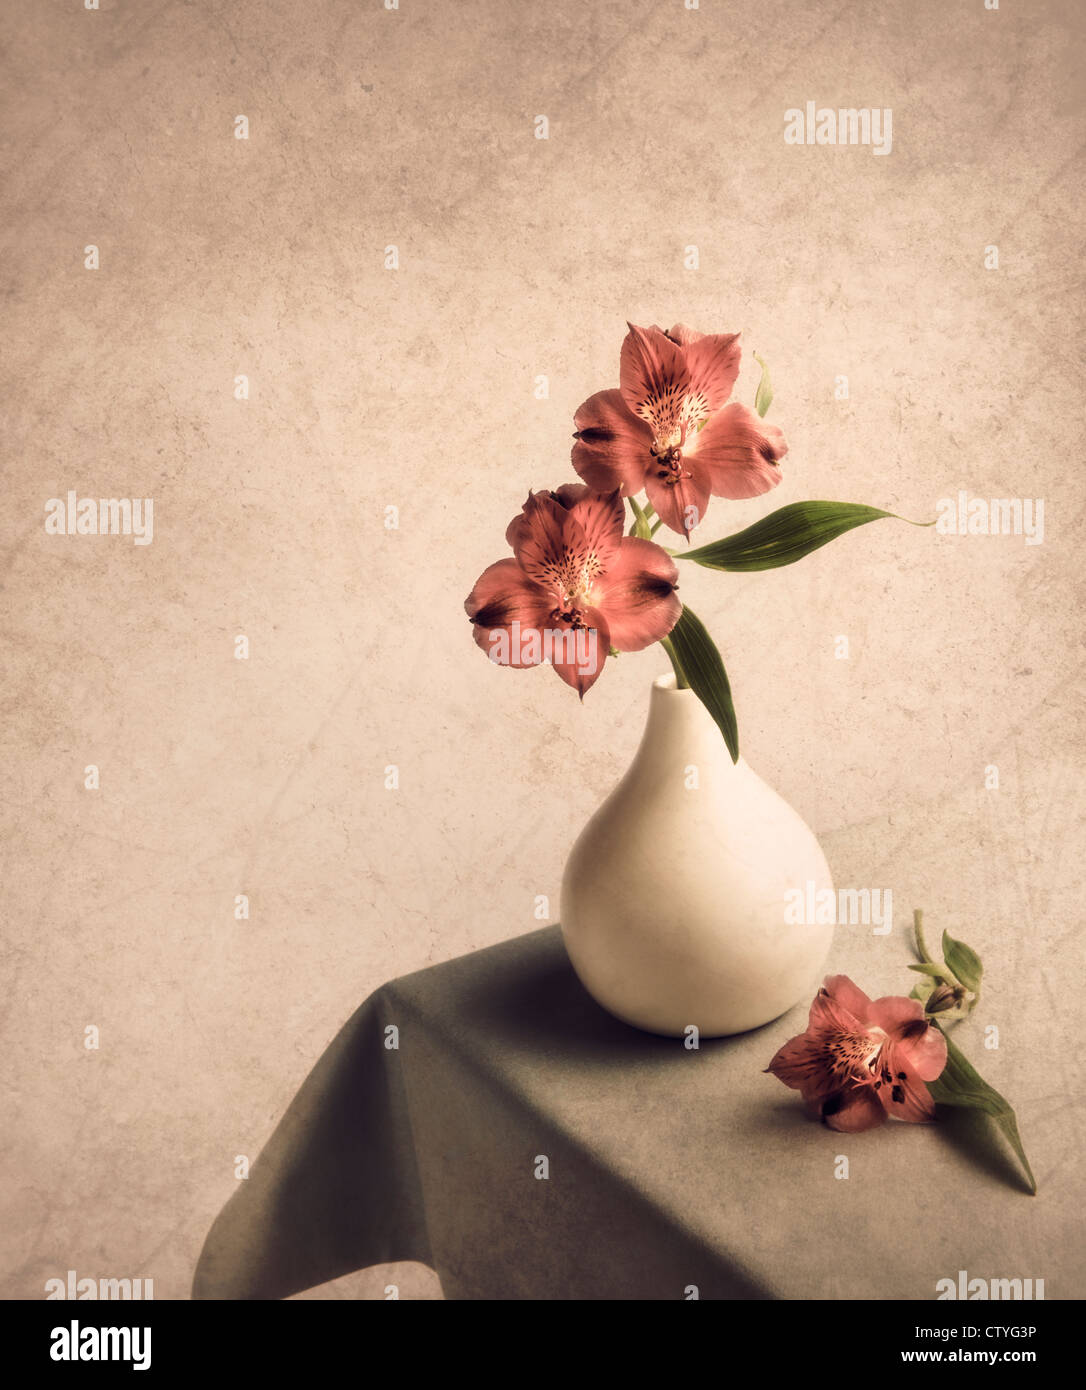 Flowers in vase on side table with textured effect - Stock Image